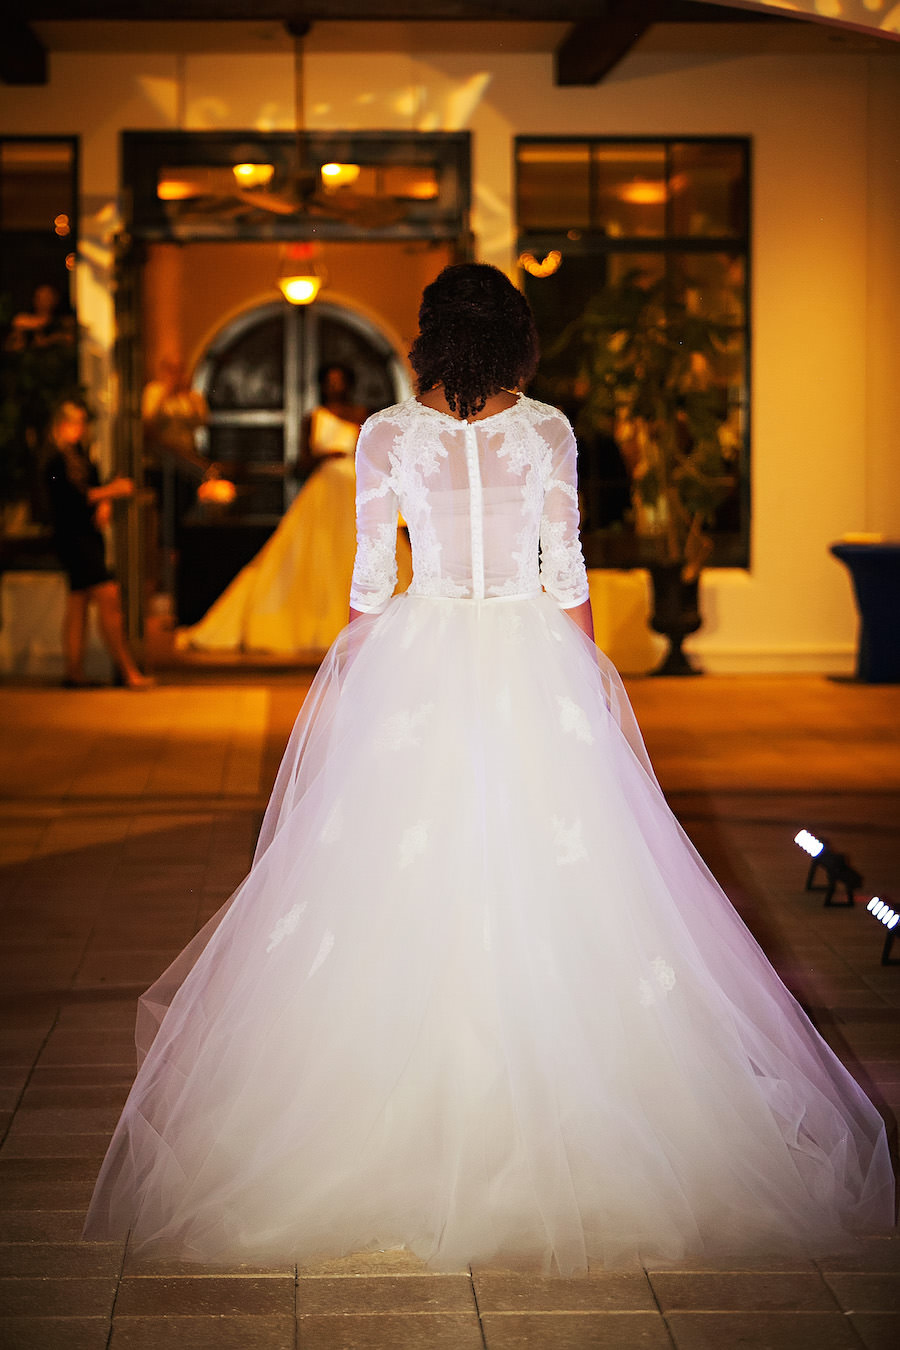 Marry Me Tampa Bay Wedding Week Fashion Show | Model in Wedding Dress with Tulle Skirt and Lace Sleeves | Tampa Bridal Salon Isabel O'Neil Bridal | Wedding Photographer Limelight Photography